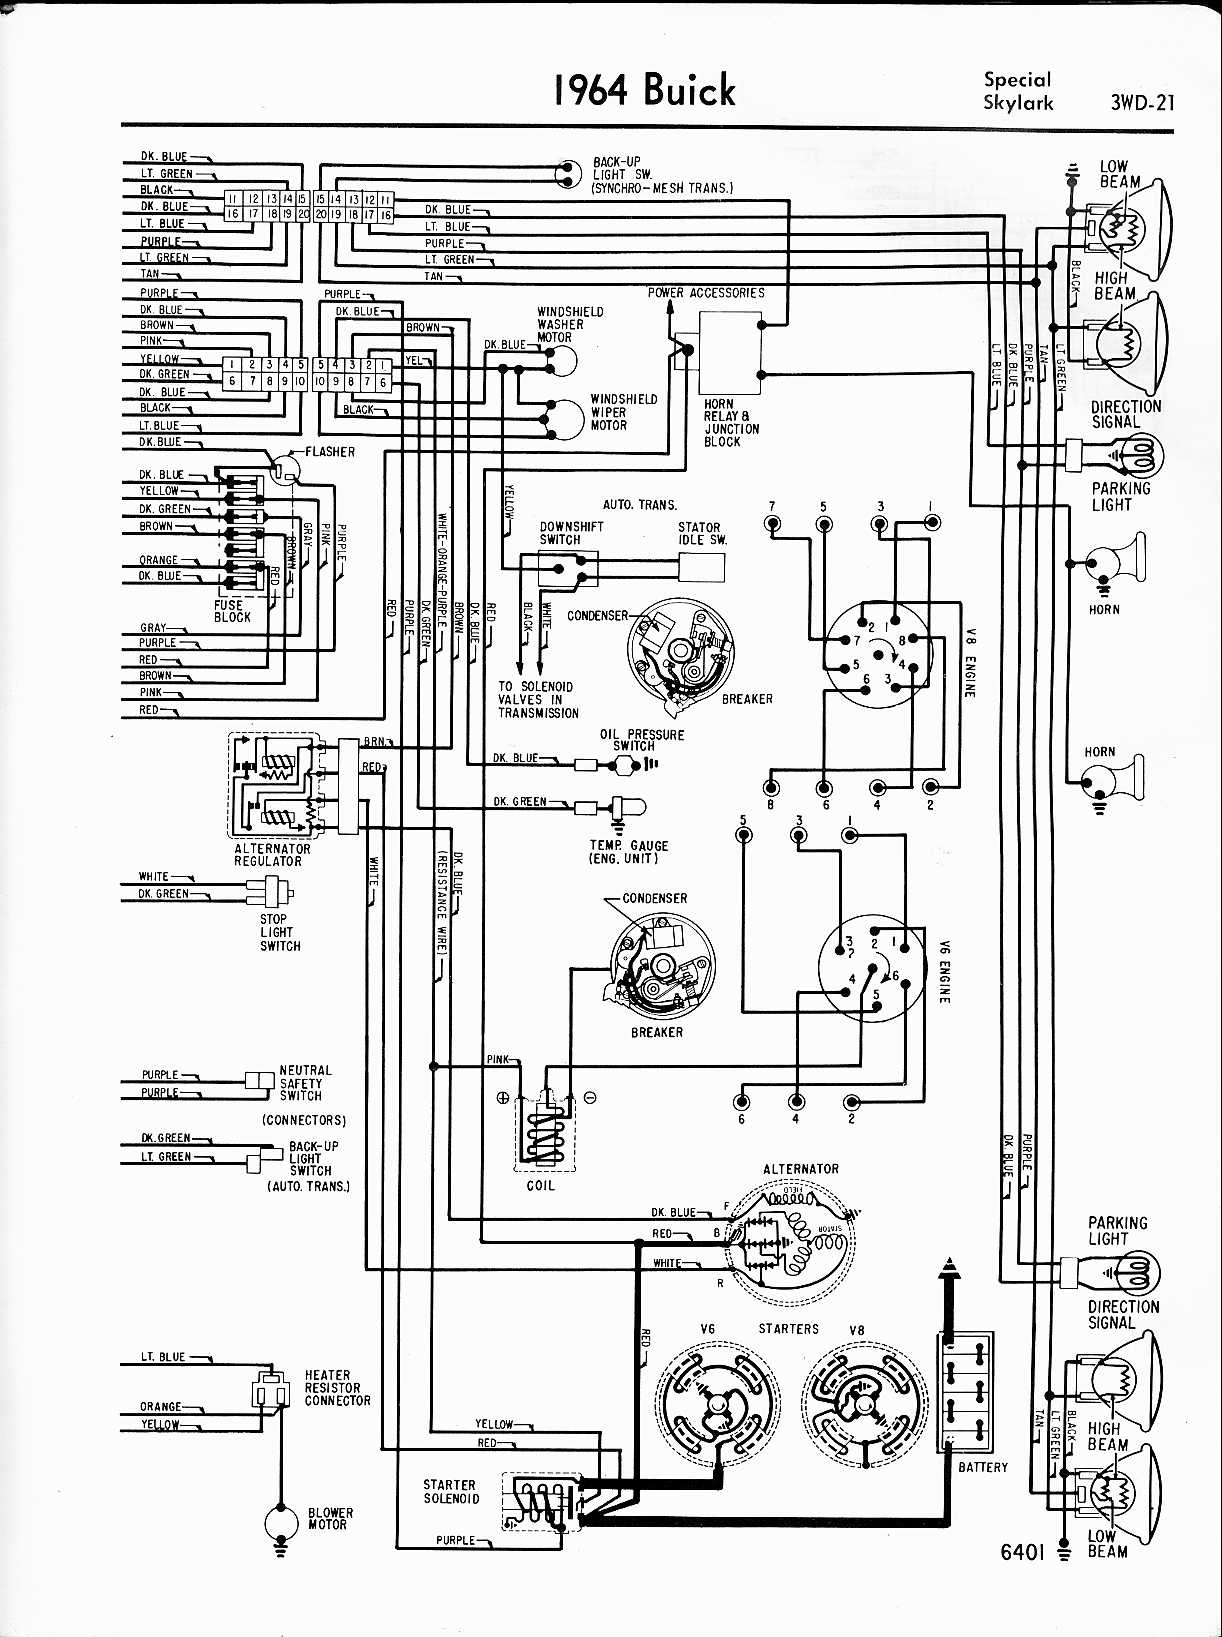 Buick Riviera Wiring To Battery Diagram Free For You 1996 Lesabre Fuse Box 1967 Vacuum Portal Rh 2 17 Kaminari Music De Engine Signal Stat 900